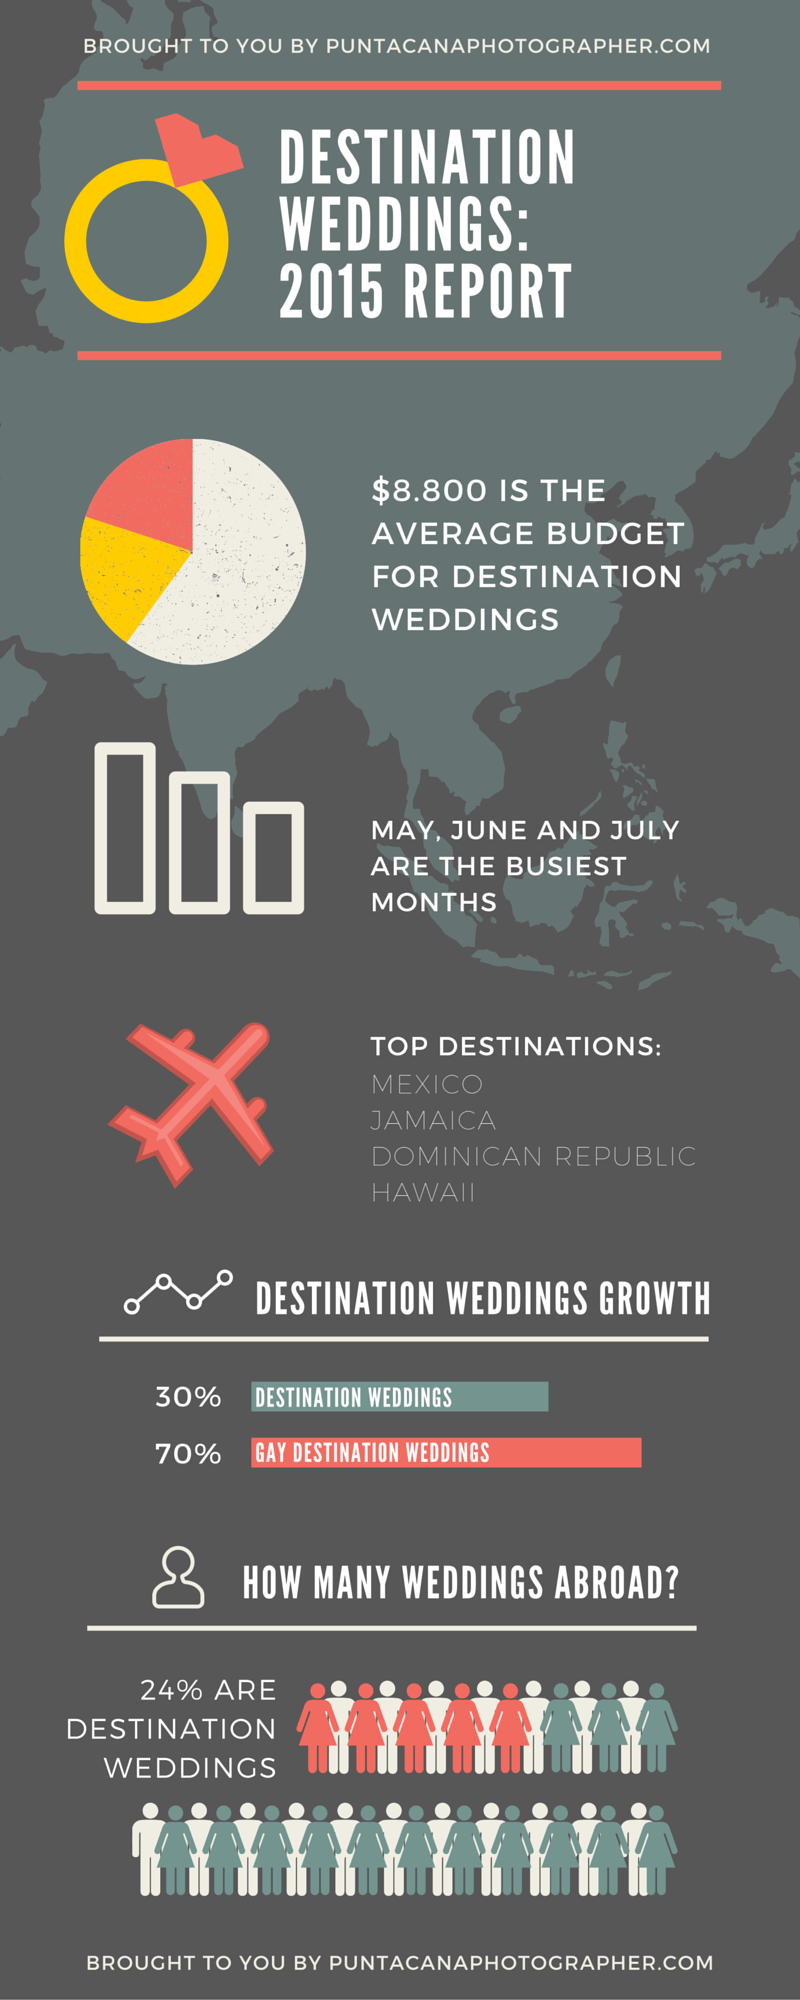 Destination Weddings Report 2015 by Punta Cana Photographer